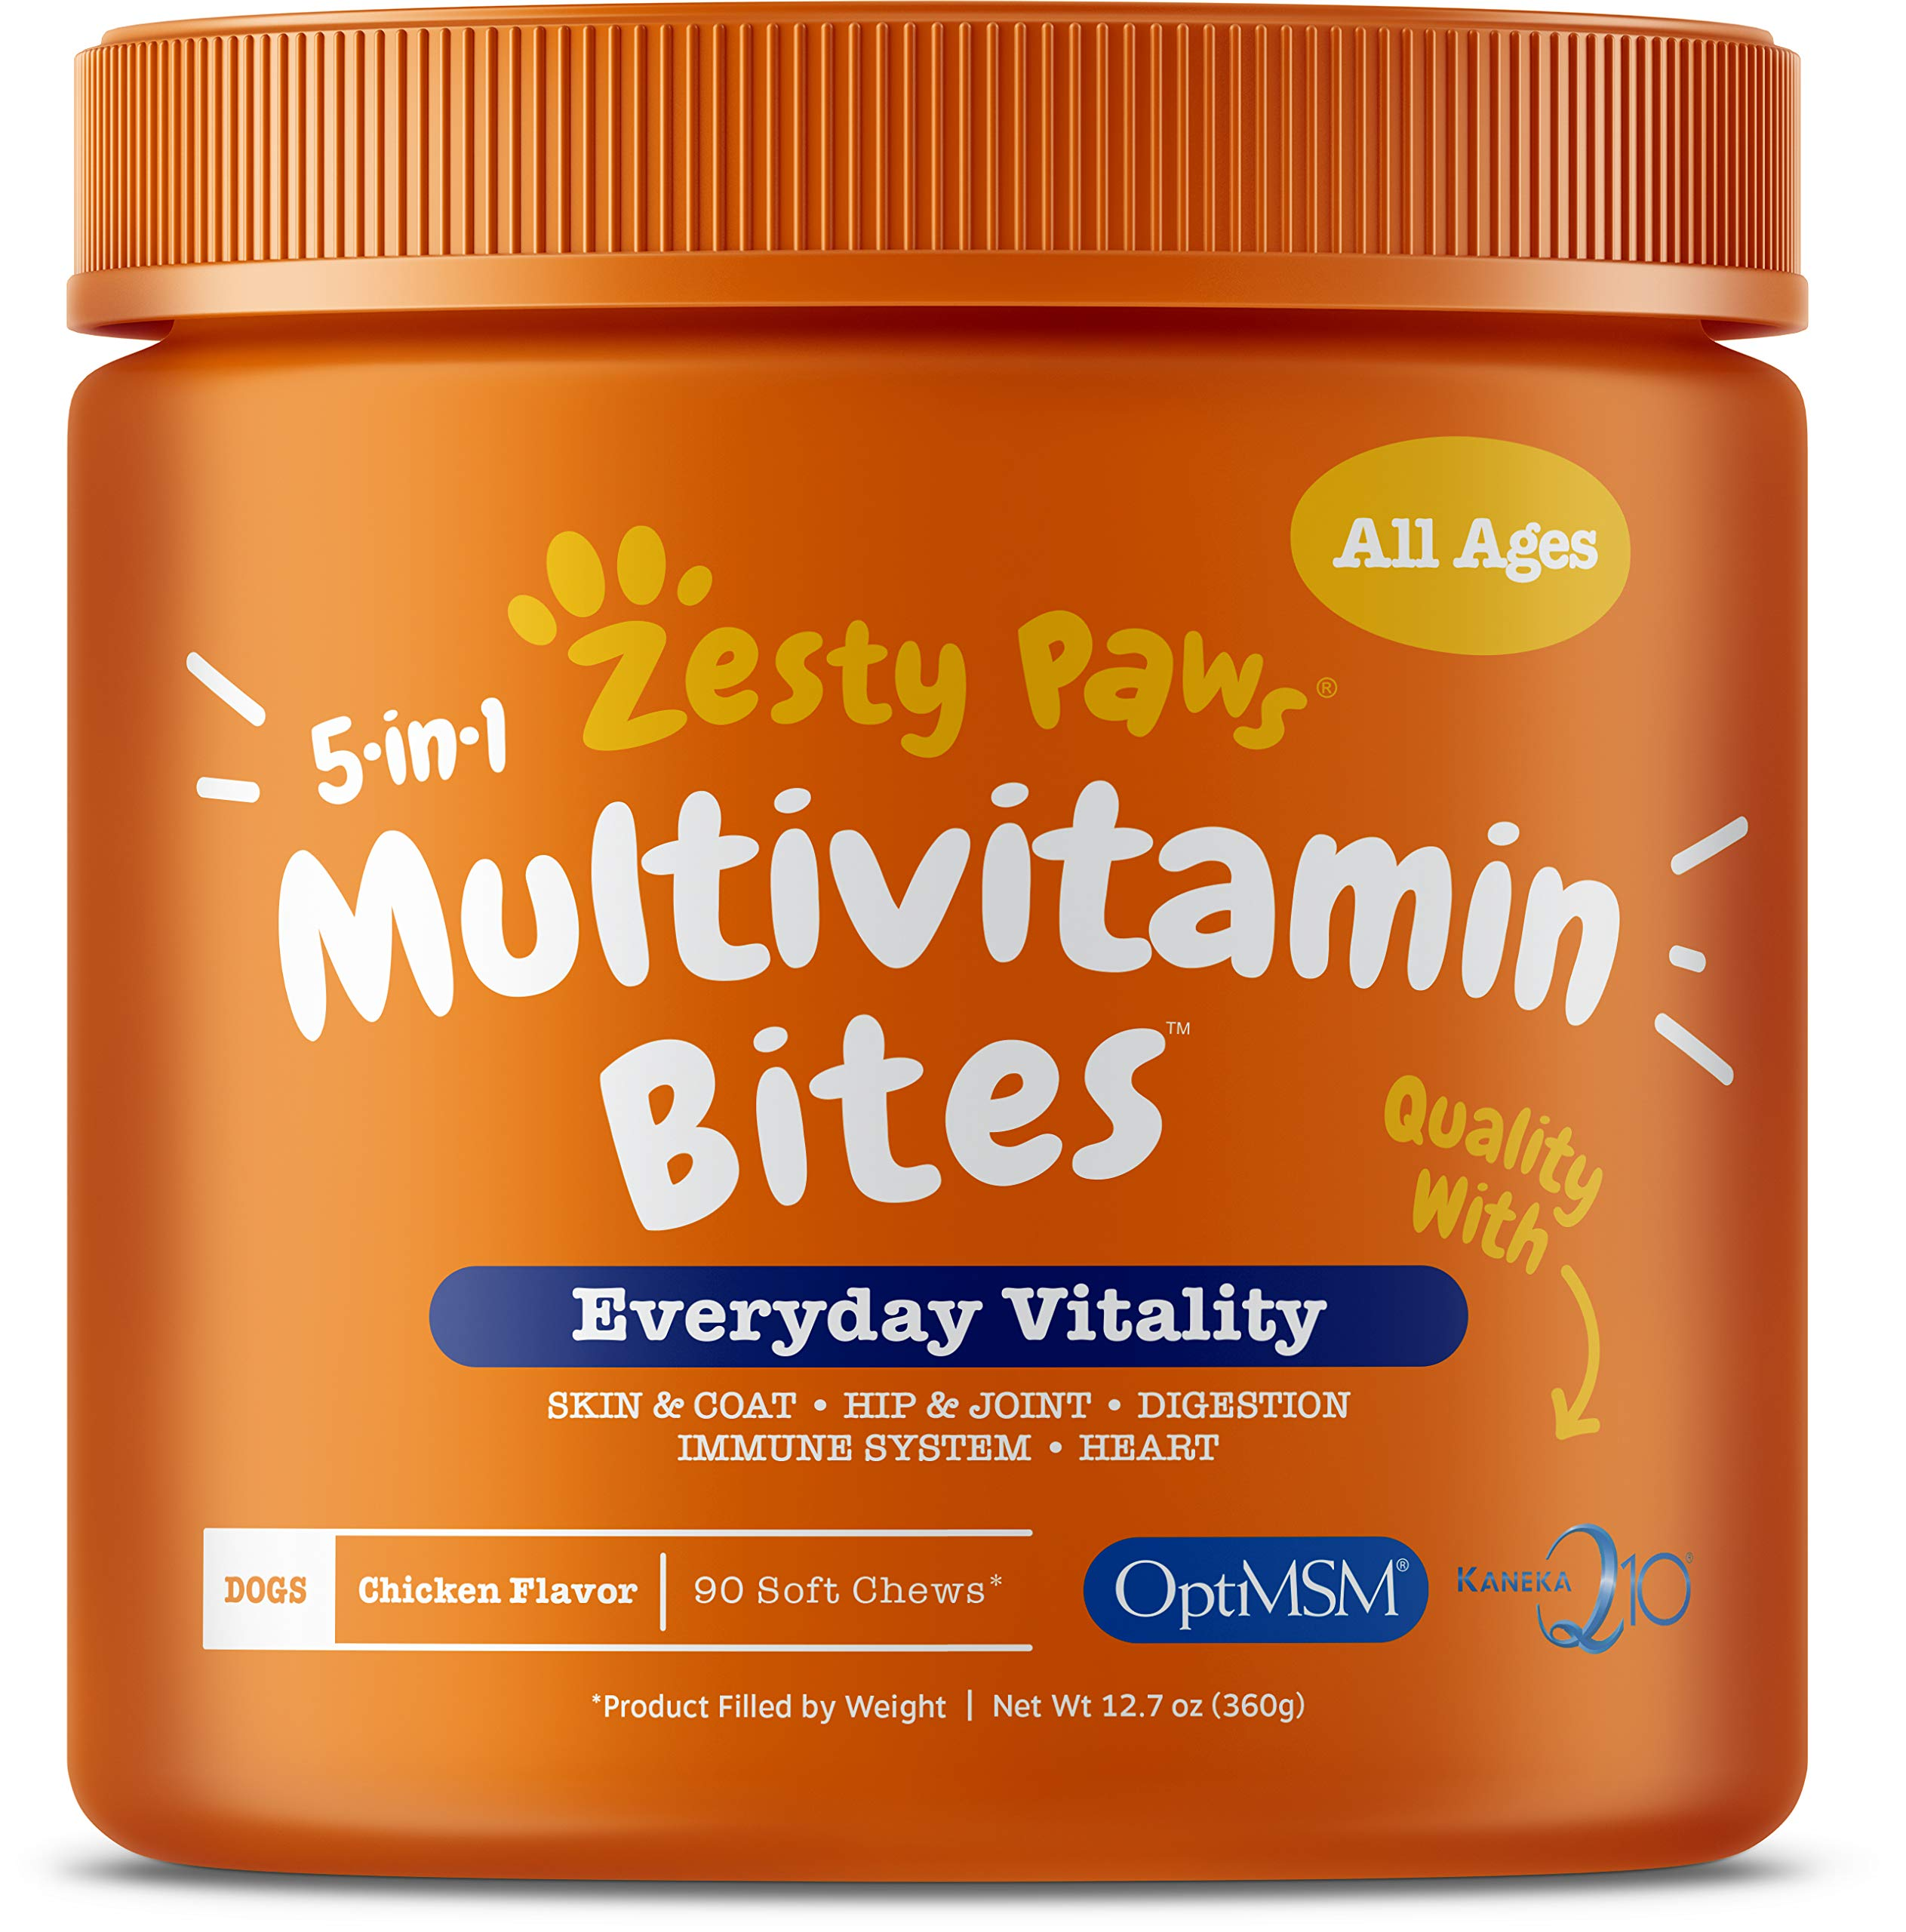 Zesty Paws Multivitamin Treats for Dogs - Glucosamine Chondroitin for Joint Support + Digestive Enzymes & Probiotics - Grain Free Dog Vitamin for Skin & Coat + Immune Health - Chicken Flavor - 90ct by Zesty Paws